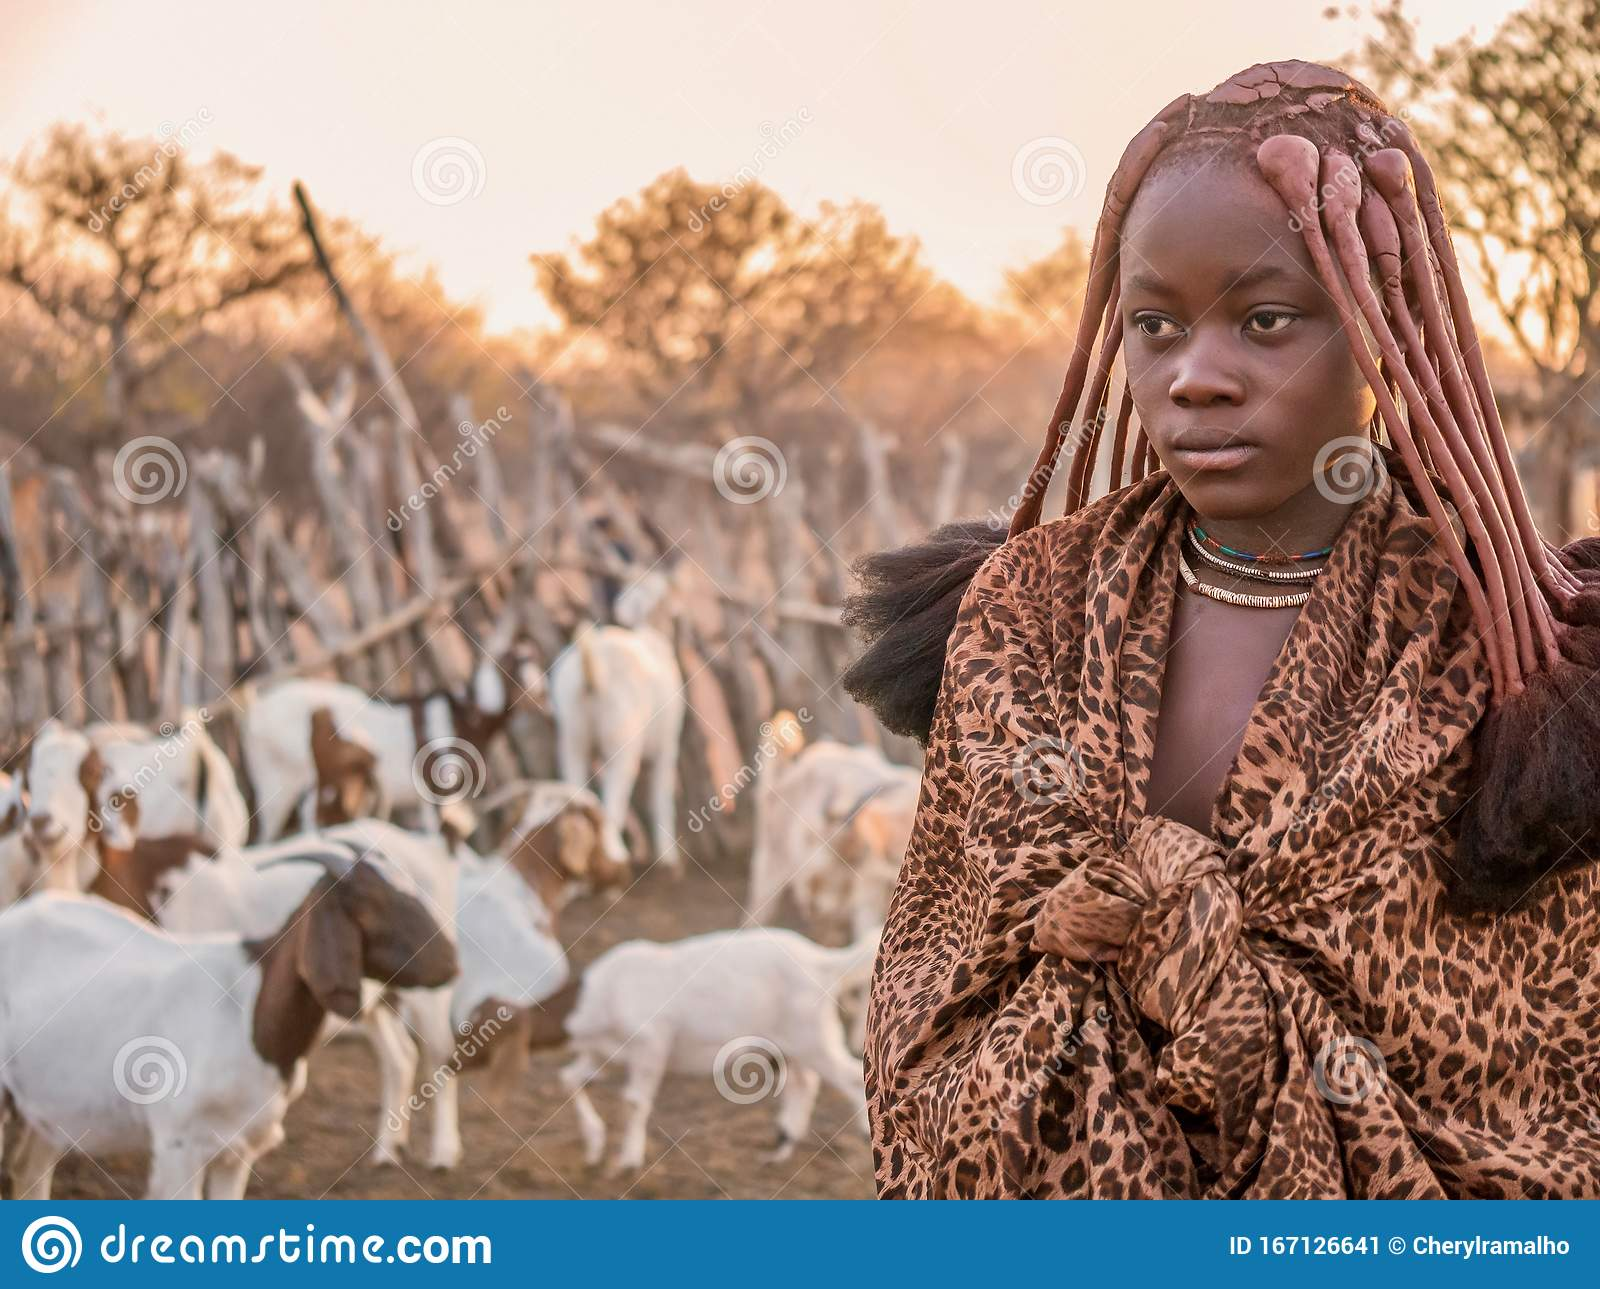 traditional Village of Purros, Himba woman with children